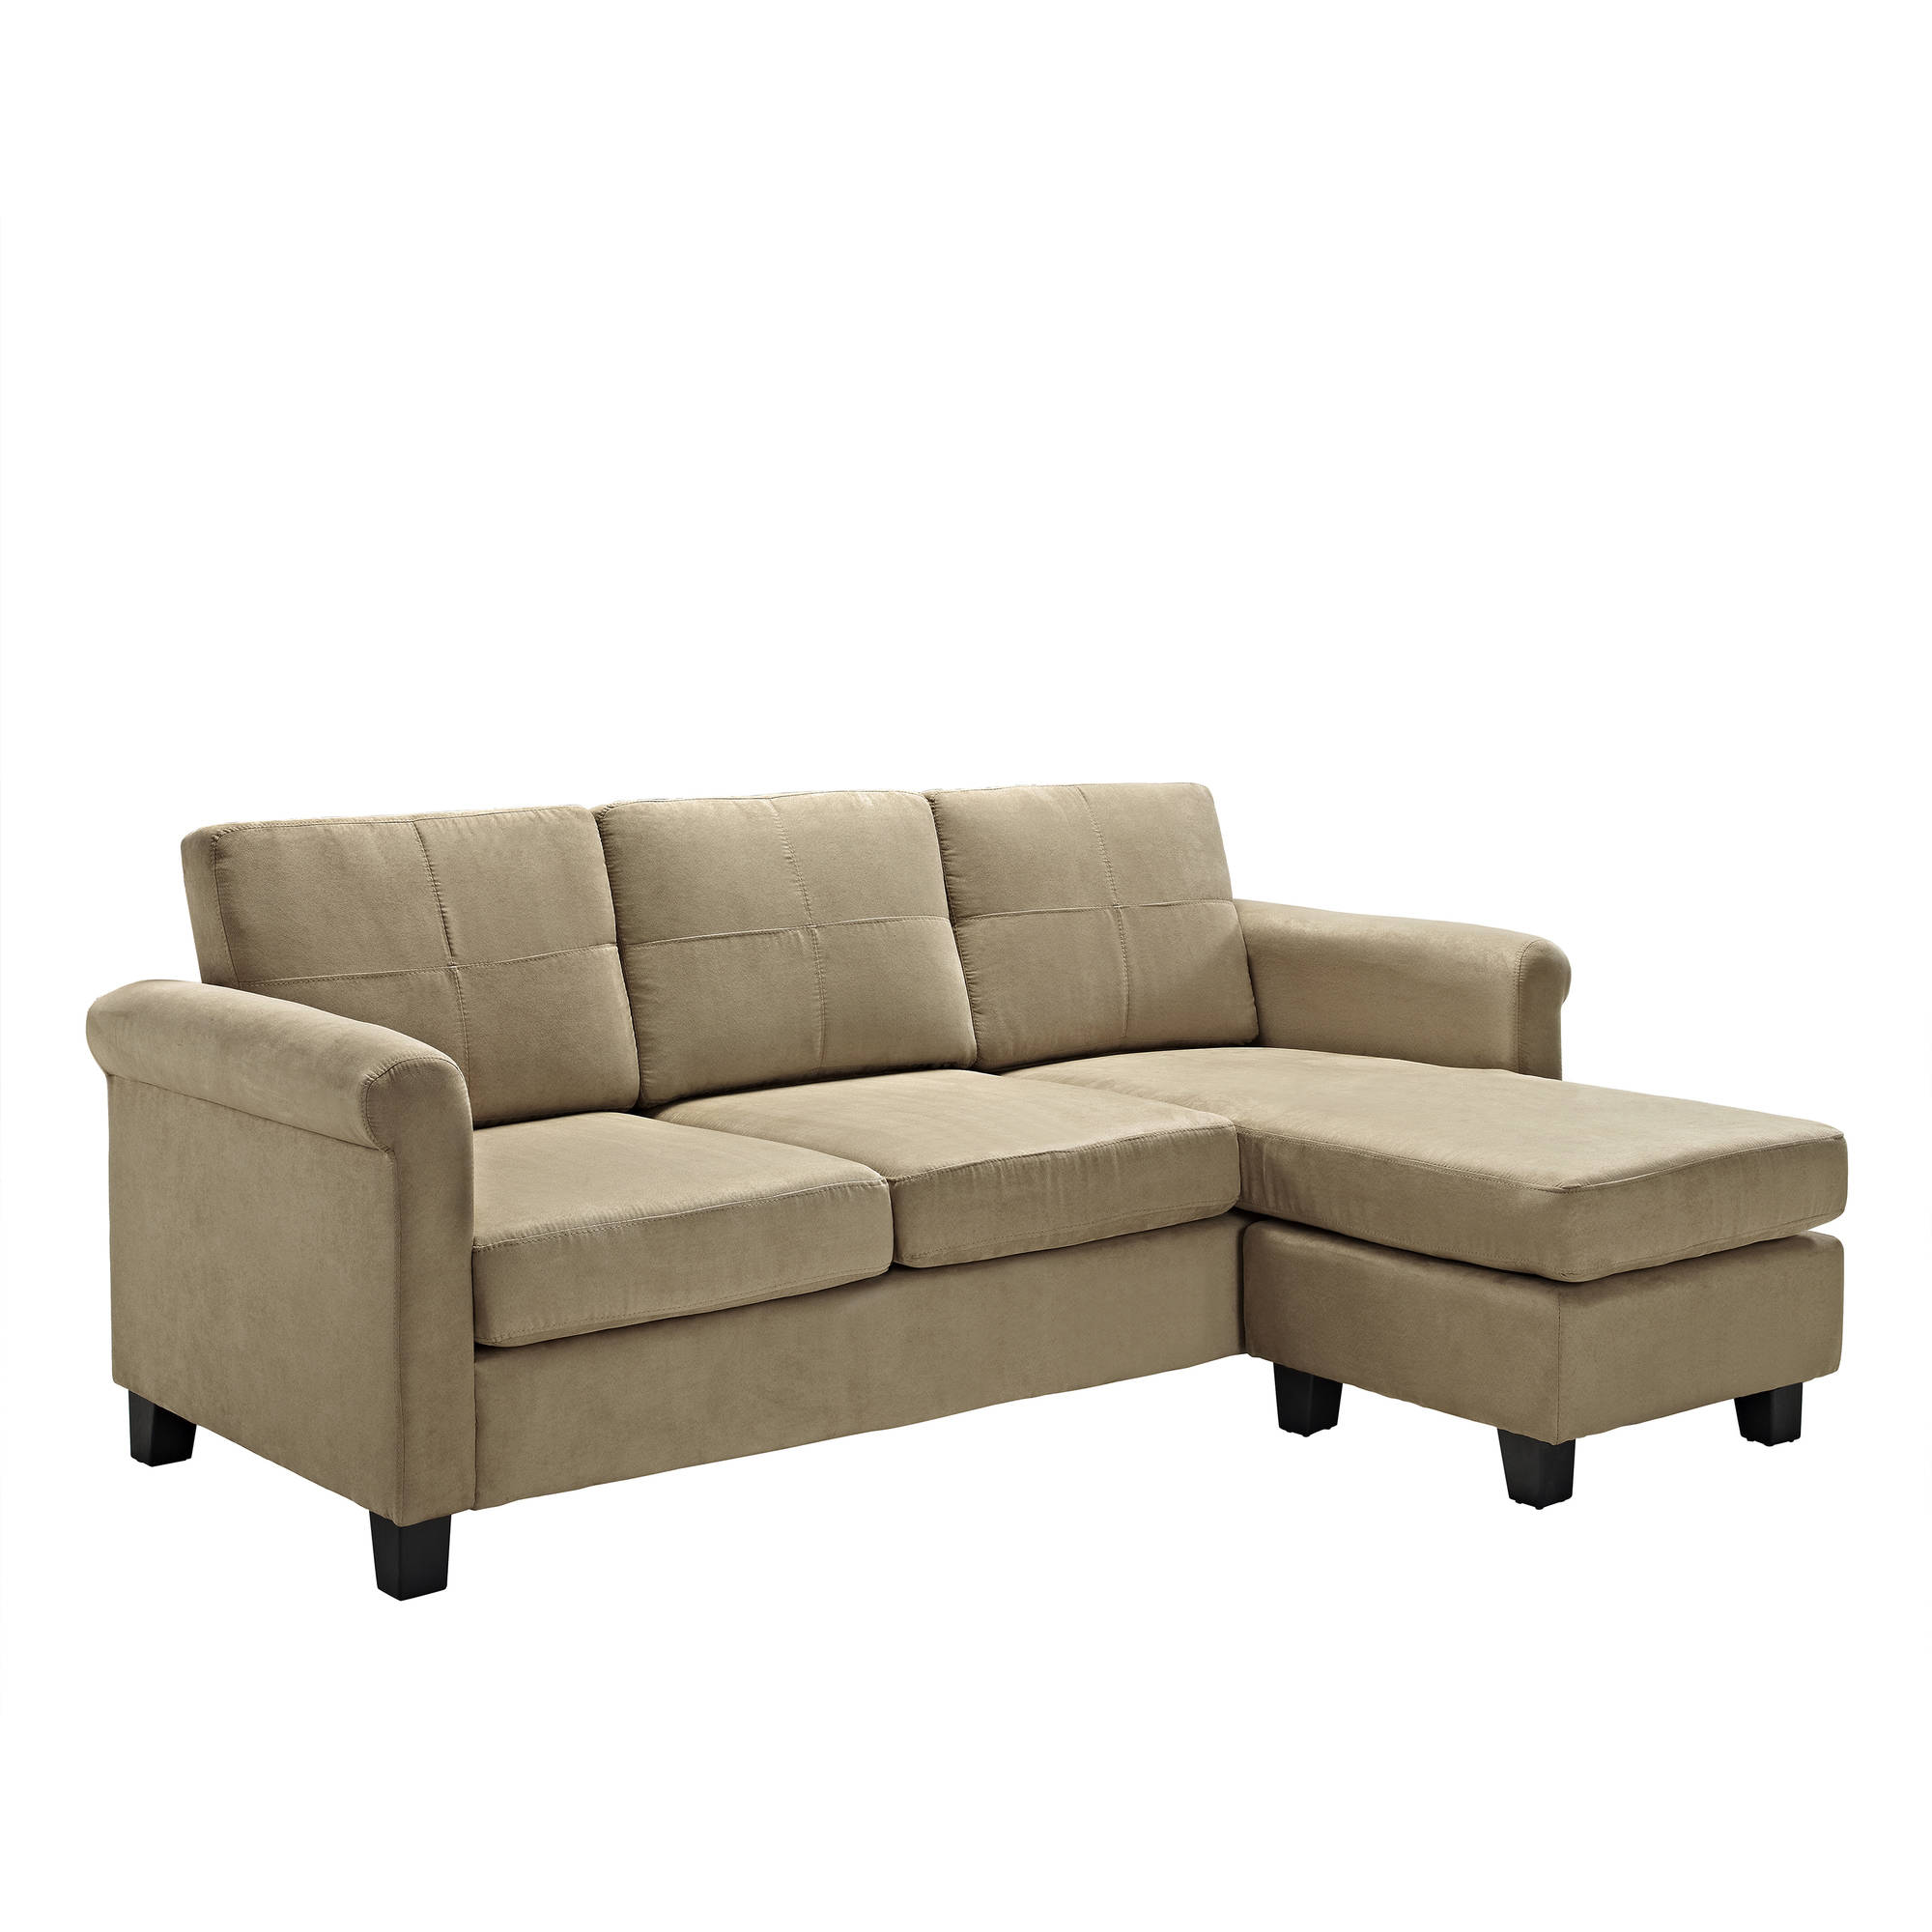 Sectional Sofas For Large Spaces: Dorel Living Small Spaces Configurable Sectional Sofa